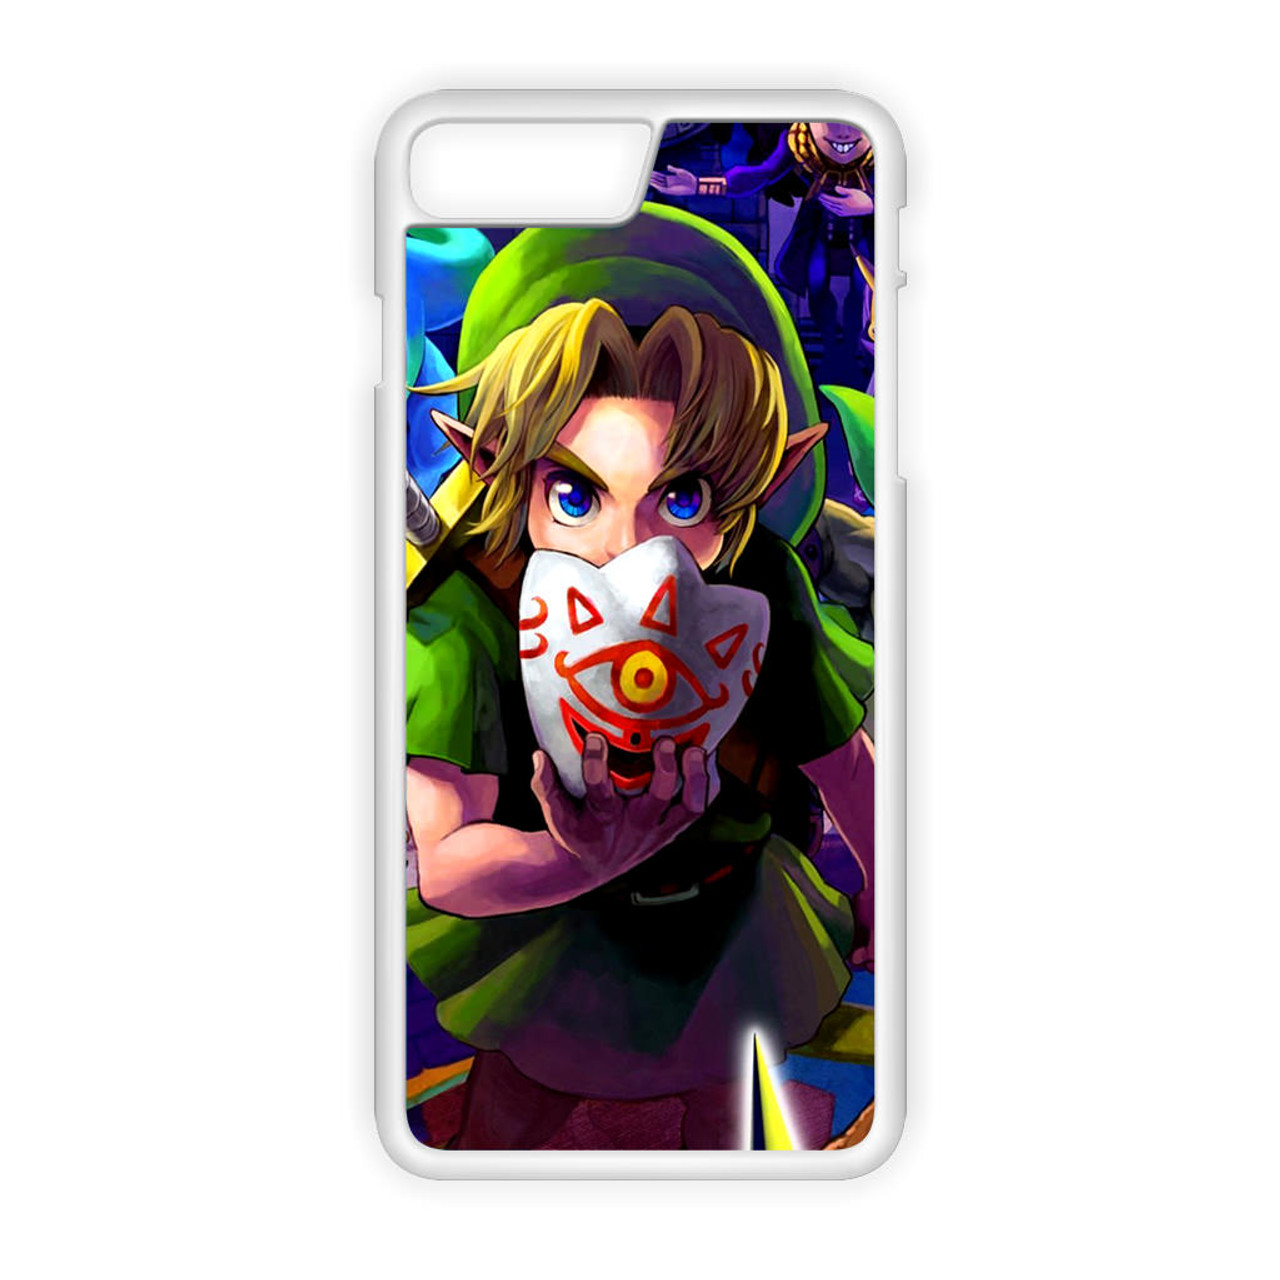 zelda majoras mask iphone case